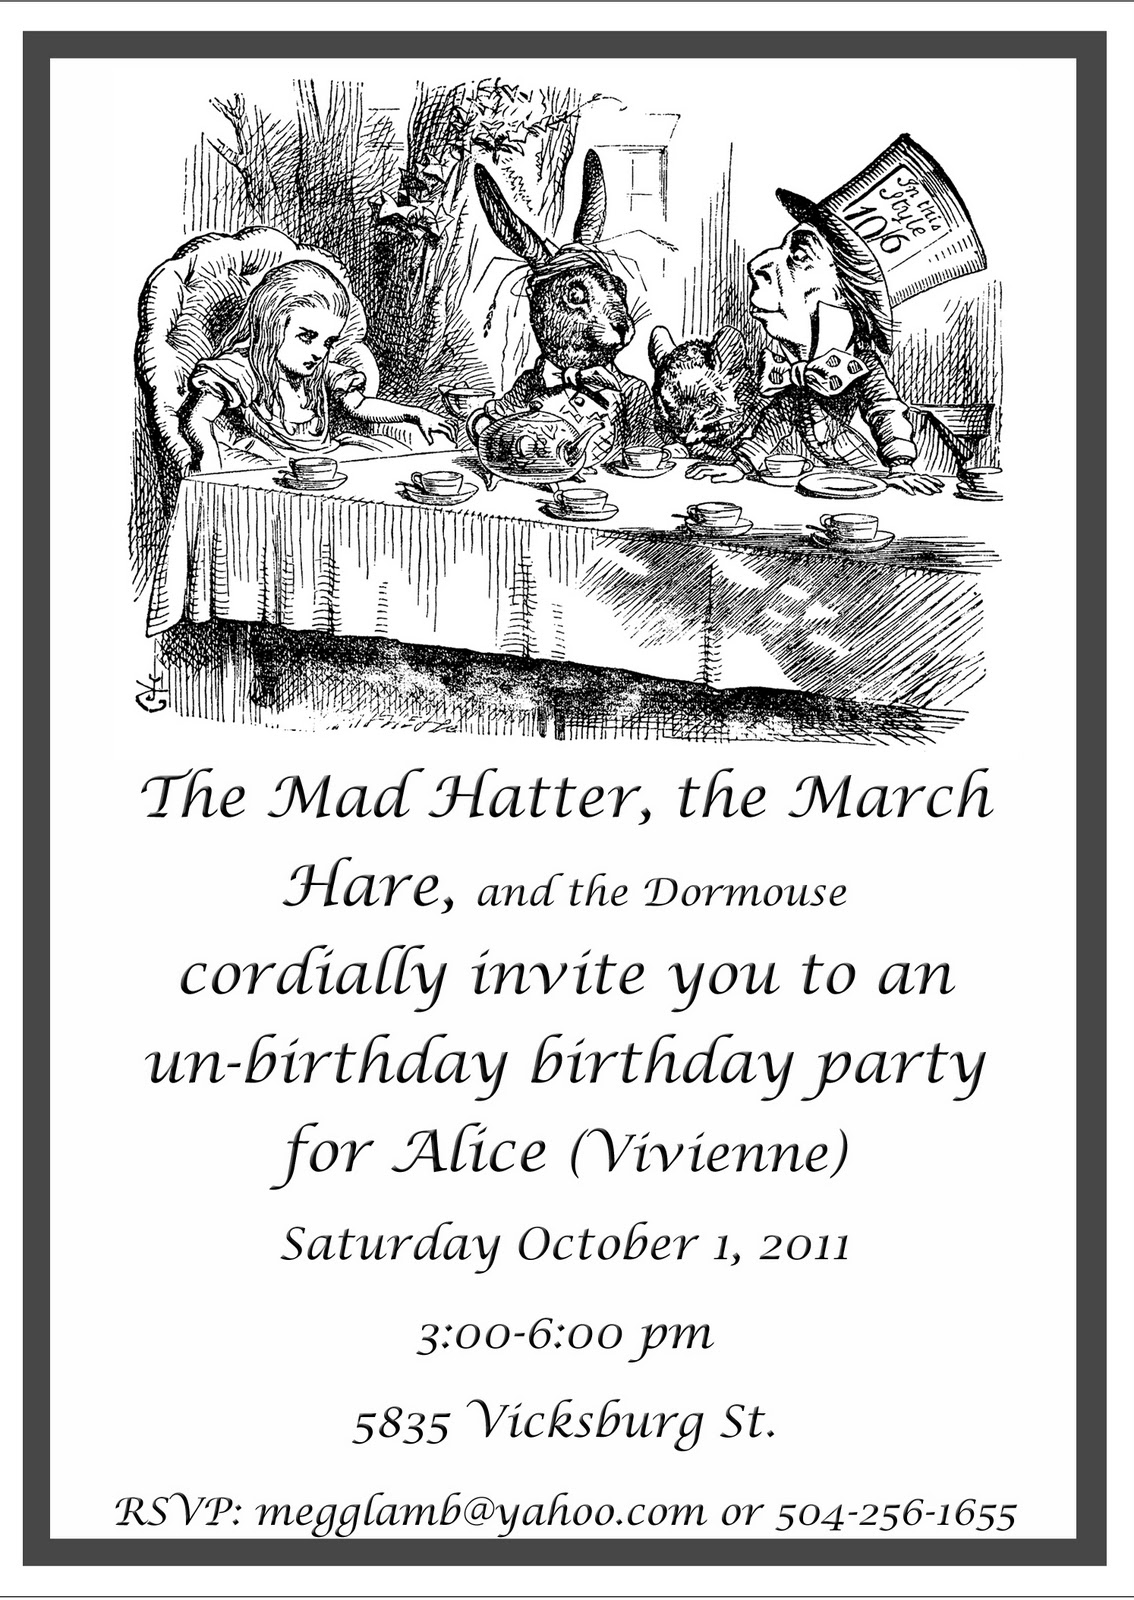 Mad Hatter Unbirthday Party! | artility: confectionery creations